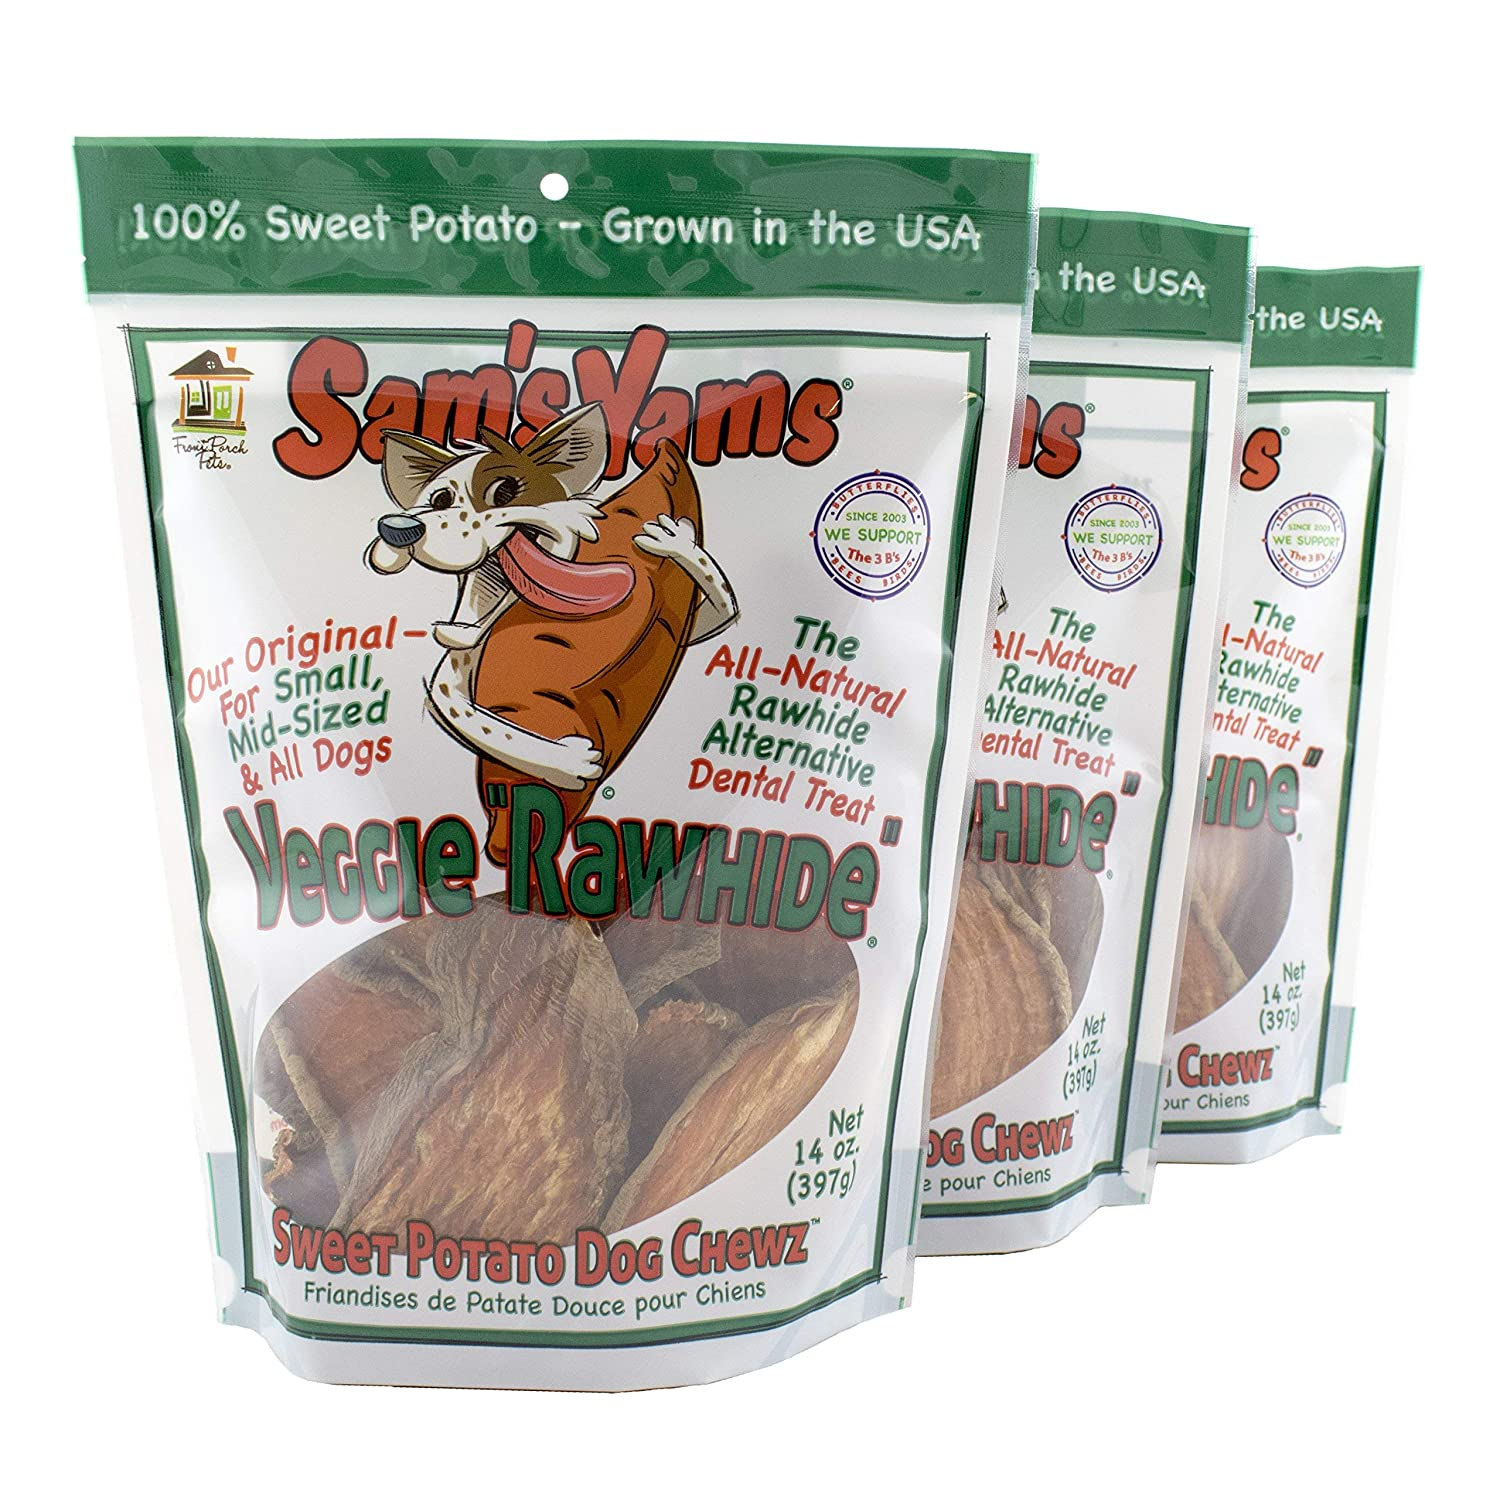 Sam s Yams Sweet Potato Dog Chewz 14oz Bags-Veggie Rawhide,3-Pack